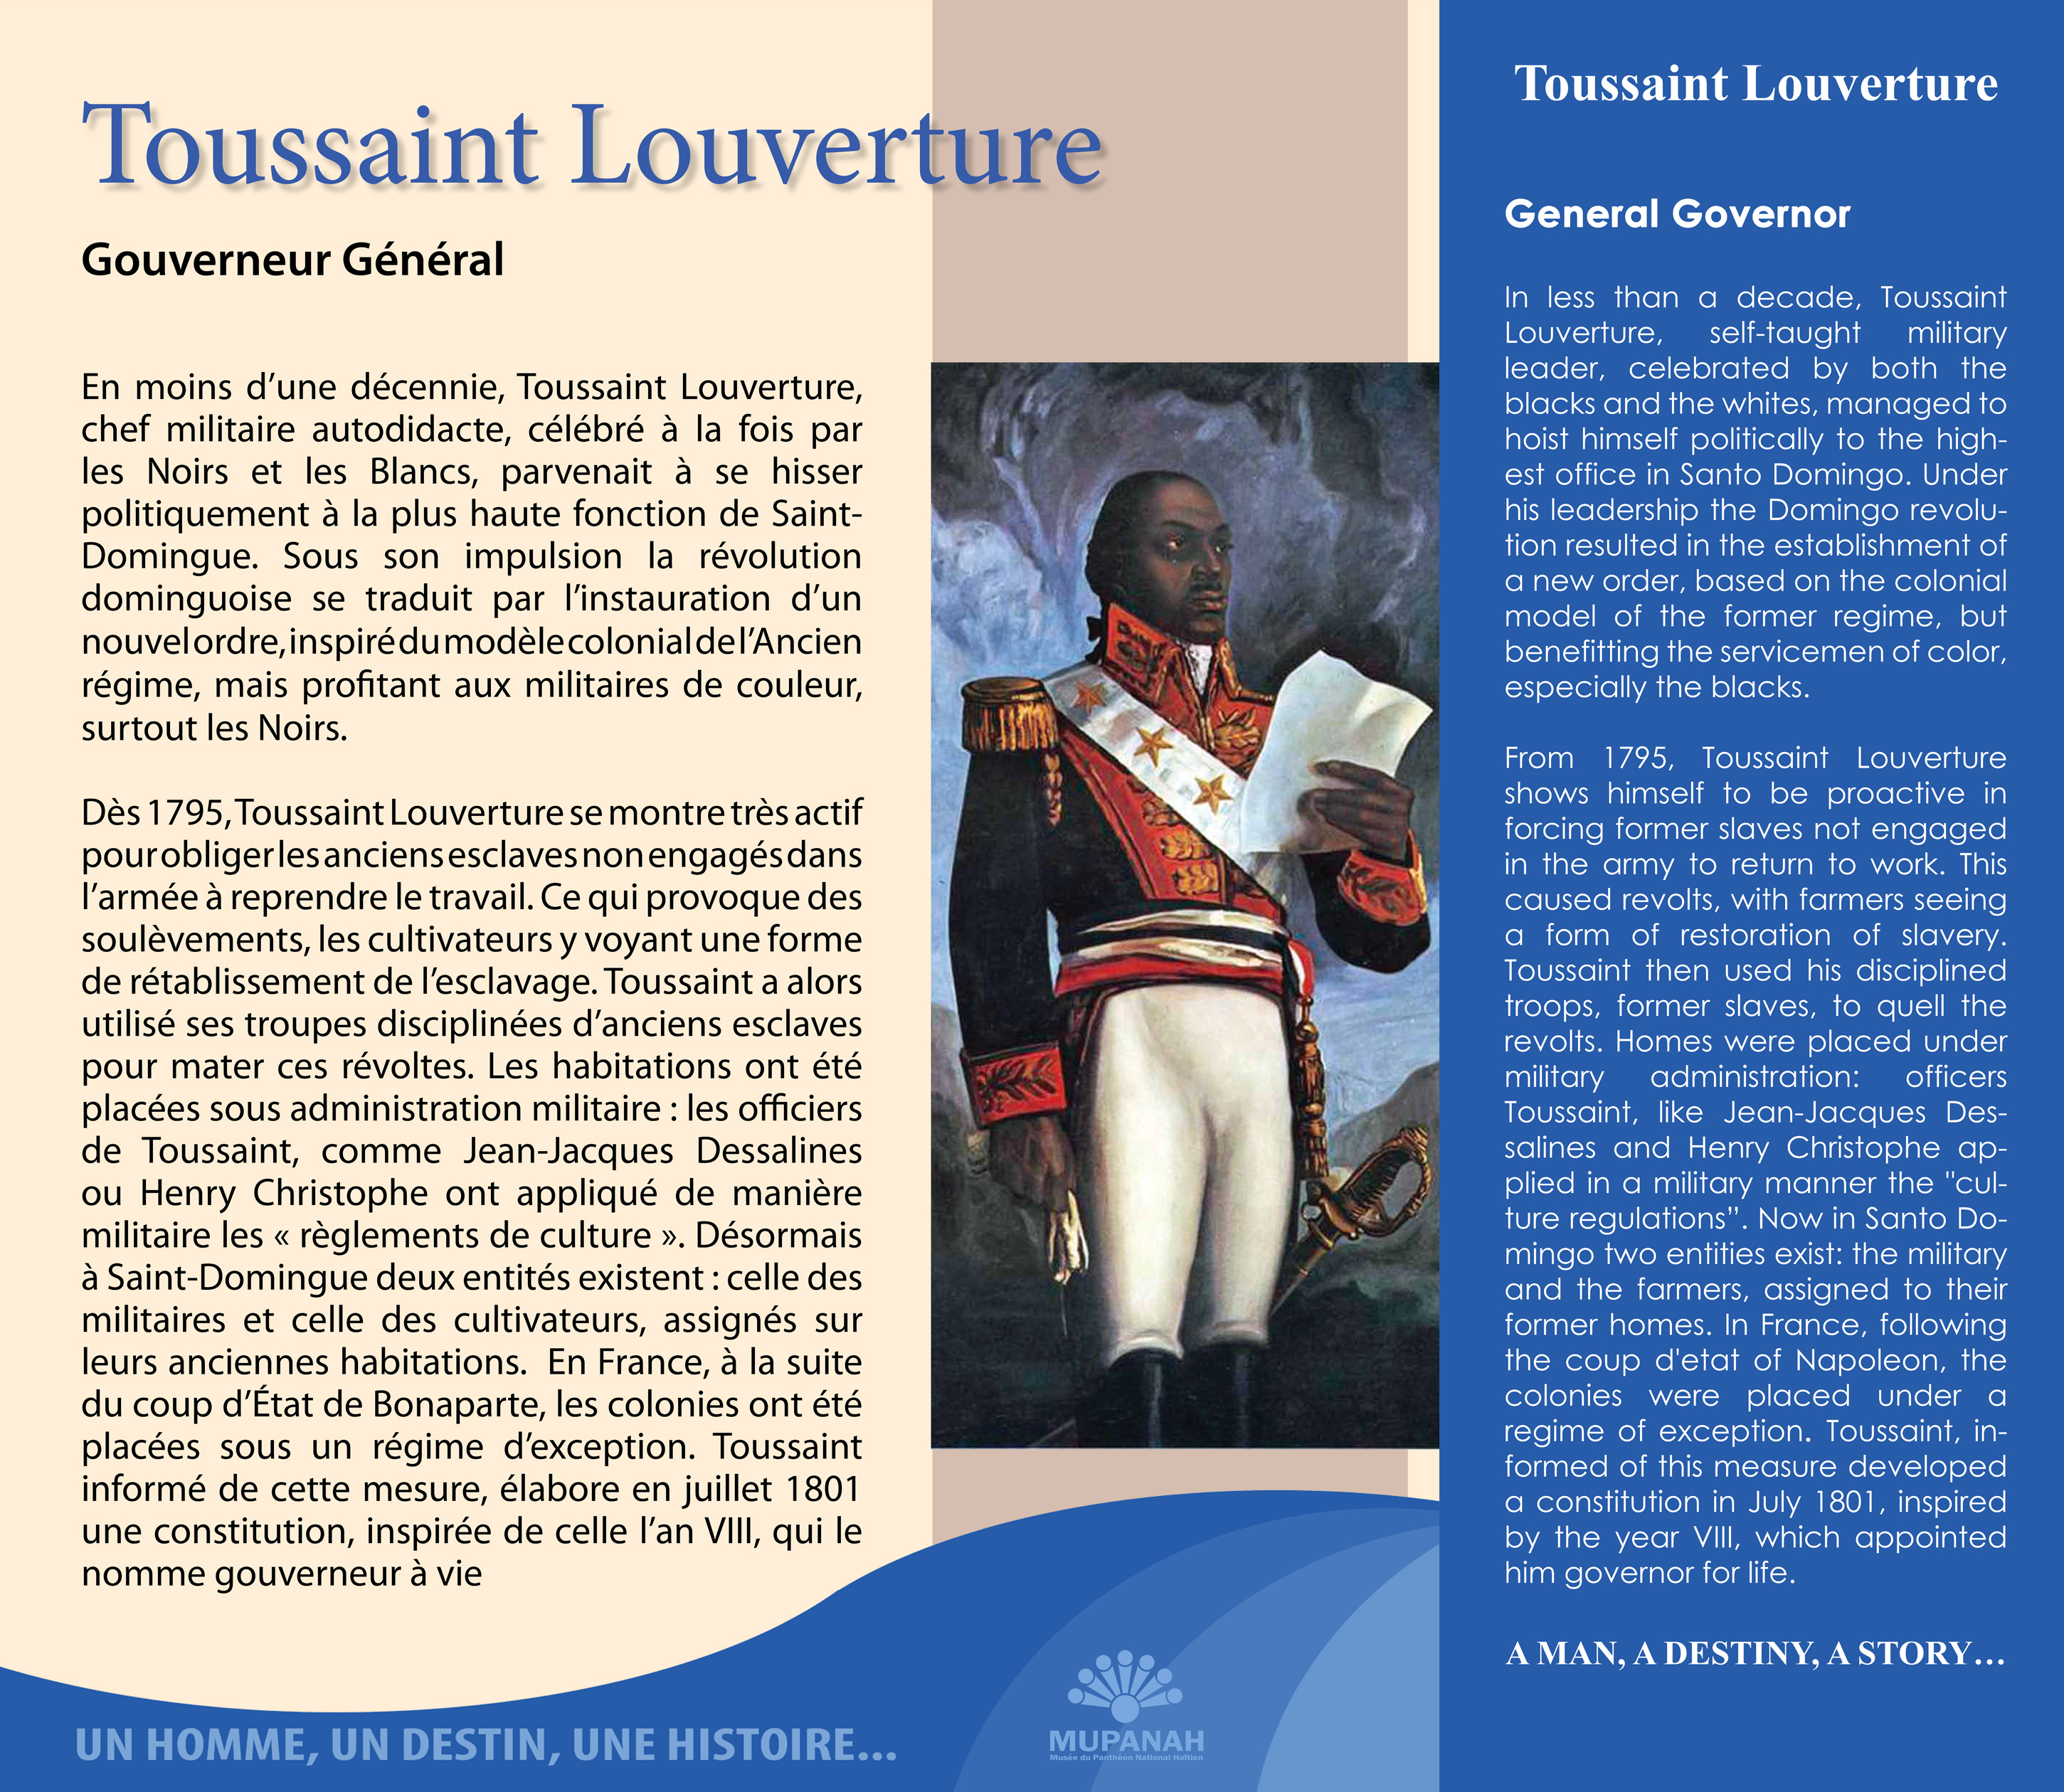 the life and accomplishments of toussaint louverture Toussaint l'ouverture dies also toussaint bréda, toussaint-louverture and wrote a constitution naming himself governor-for-life that established a new.